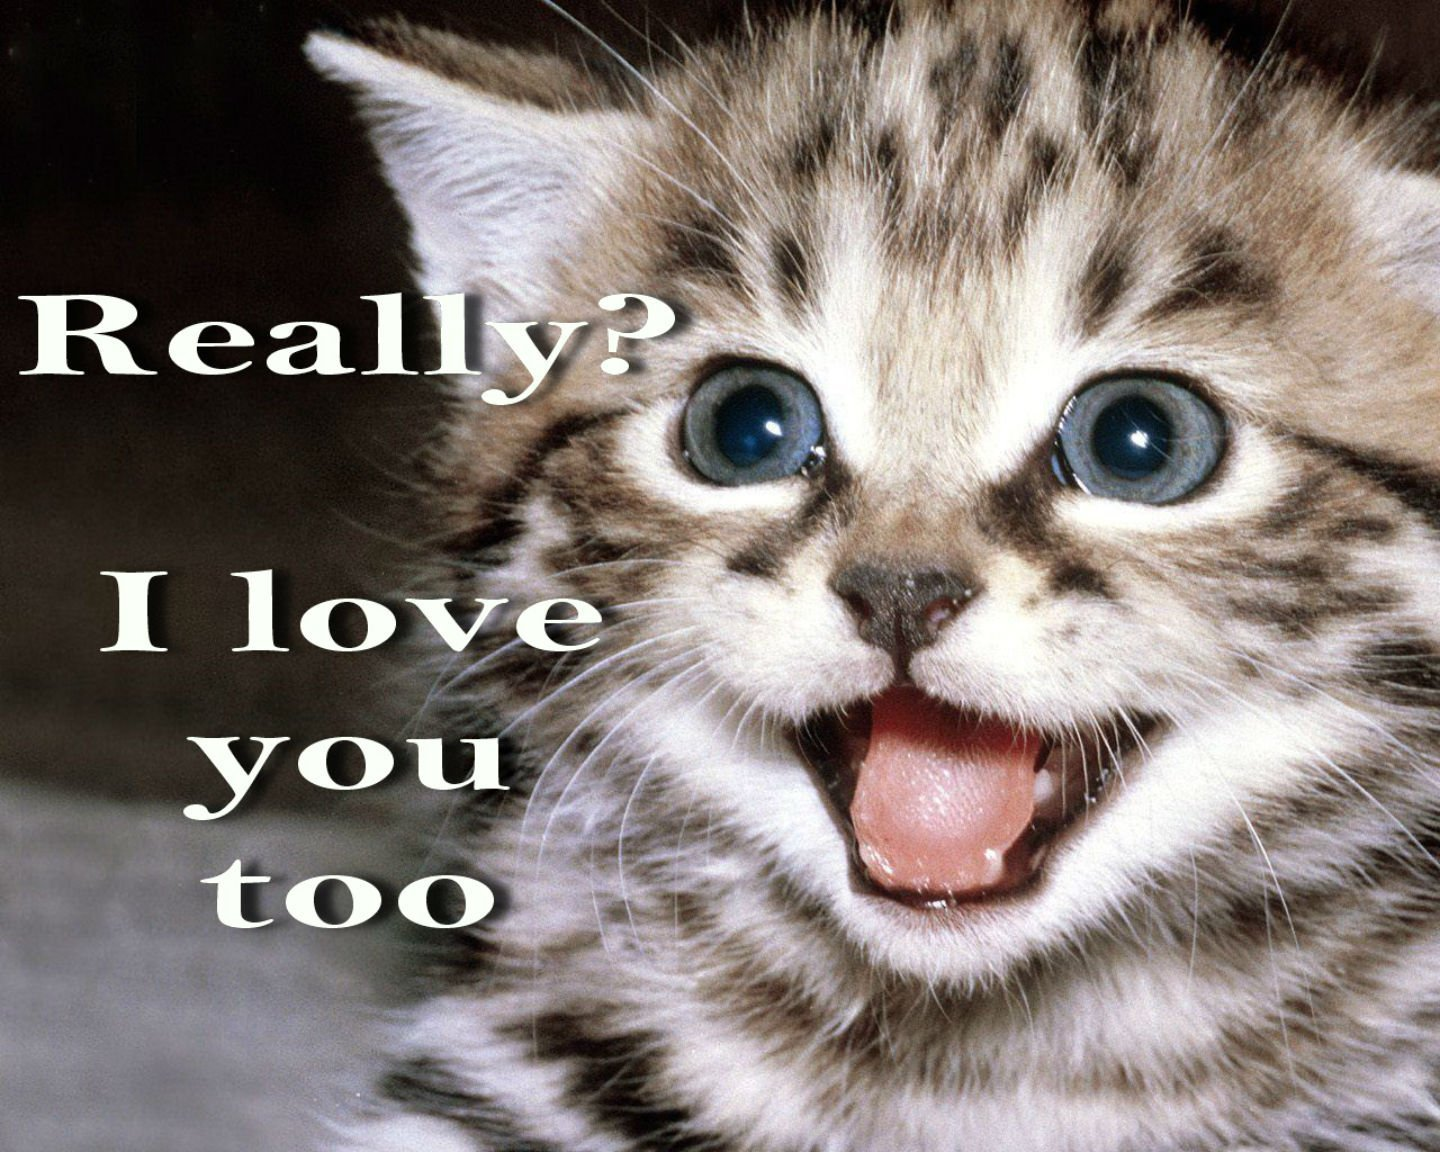 meme quote funny humor grumpy kitten mood love wallpaper background 1440x1152